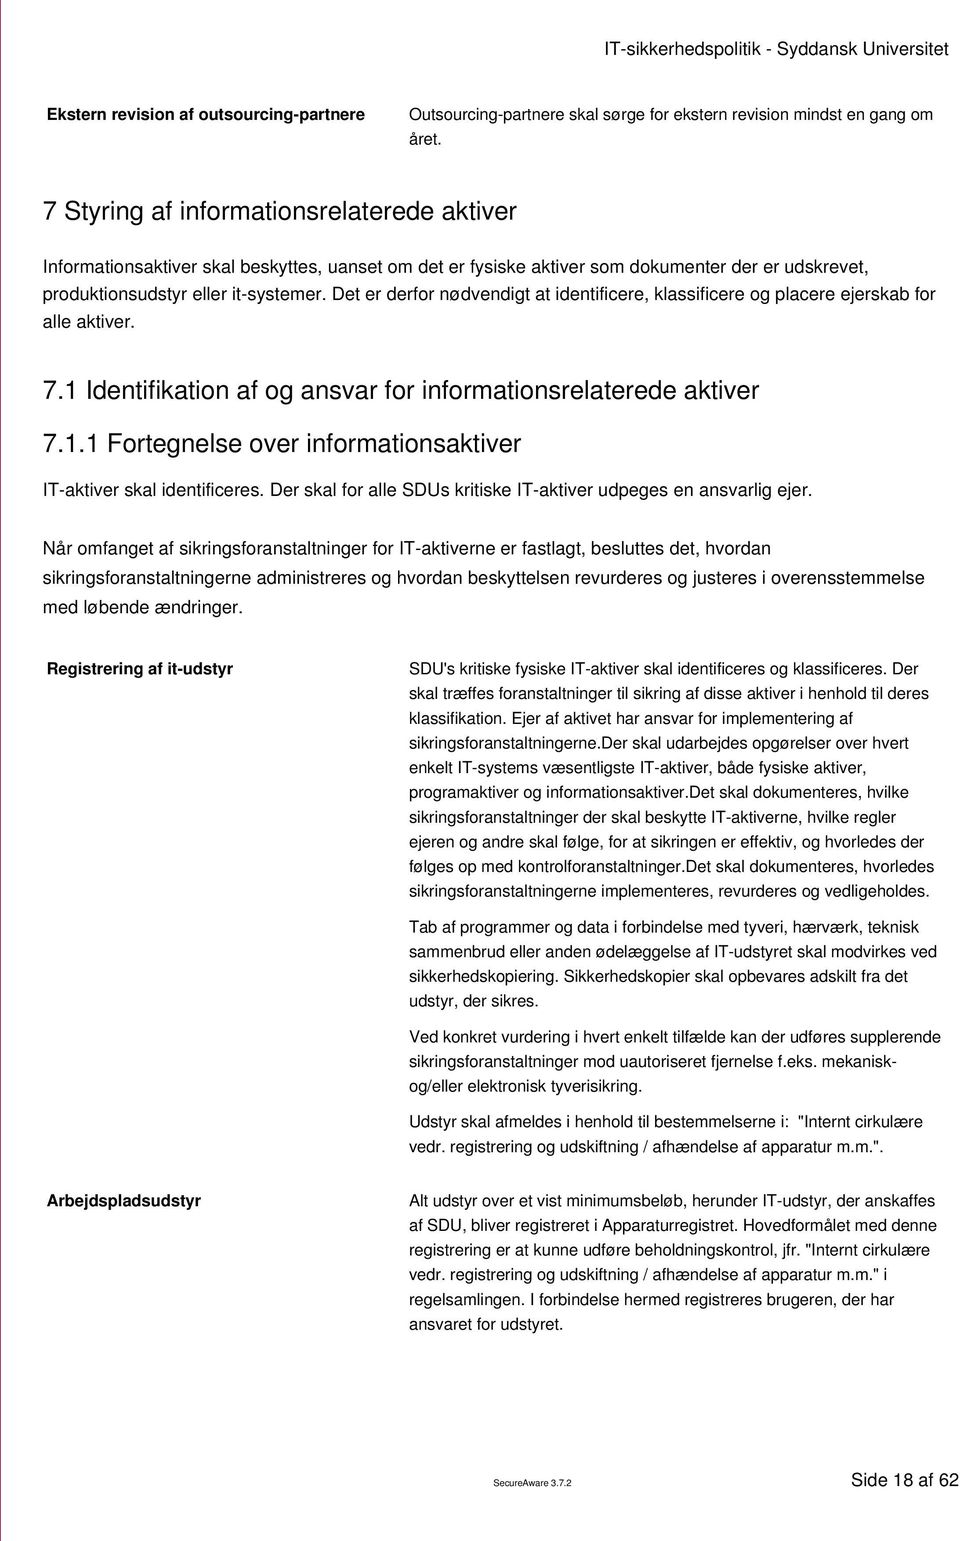 Det er derfor nødvendigt at identificere, klassificere og placere ejerskab for alle aktiver. 7.1 Identifikation af og ansvar for informationsrelaterede aktiver 7.1.1 Fortegnelse over informationsaktiver IT-aktiver skal identificeres.